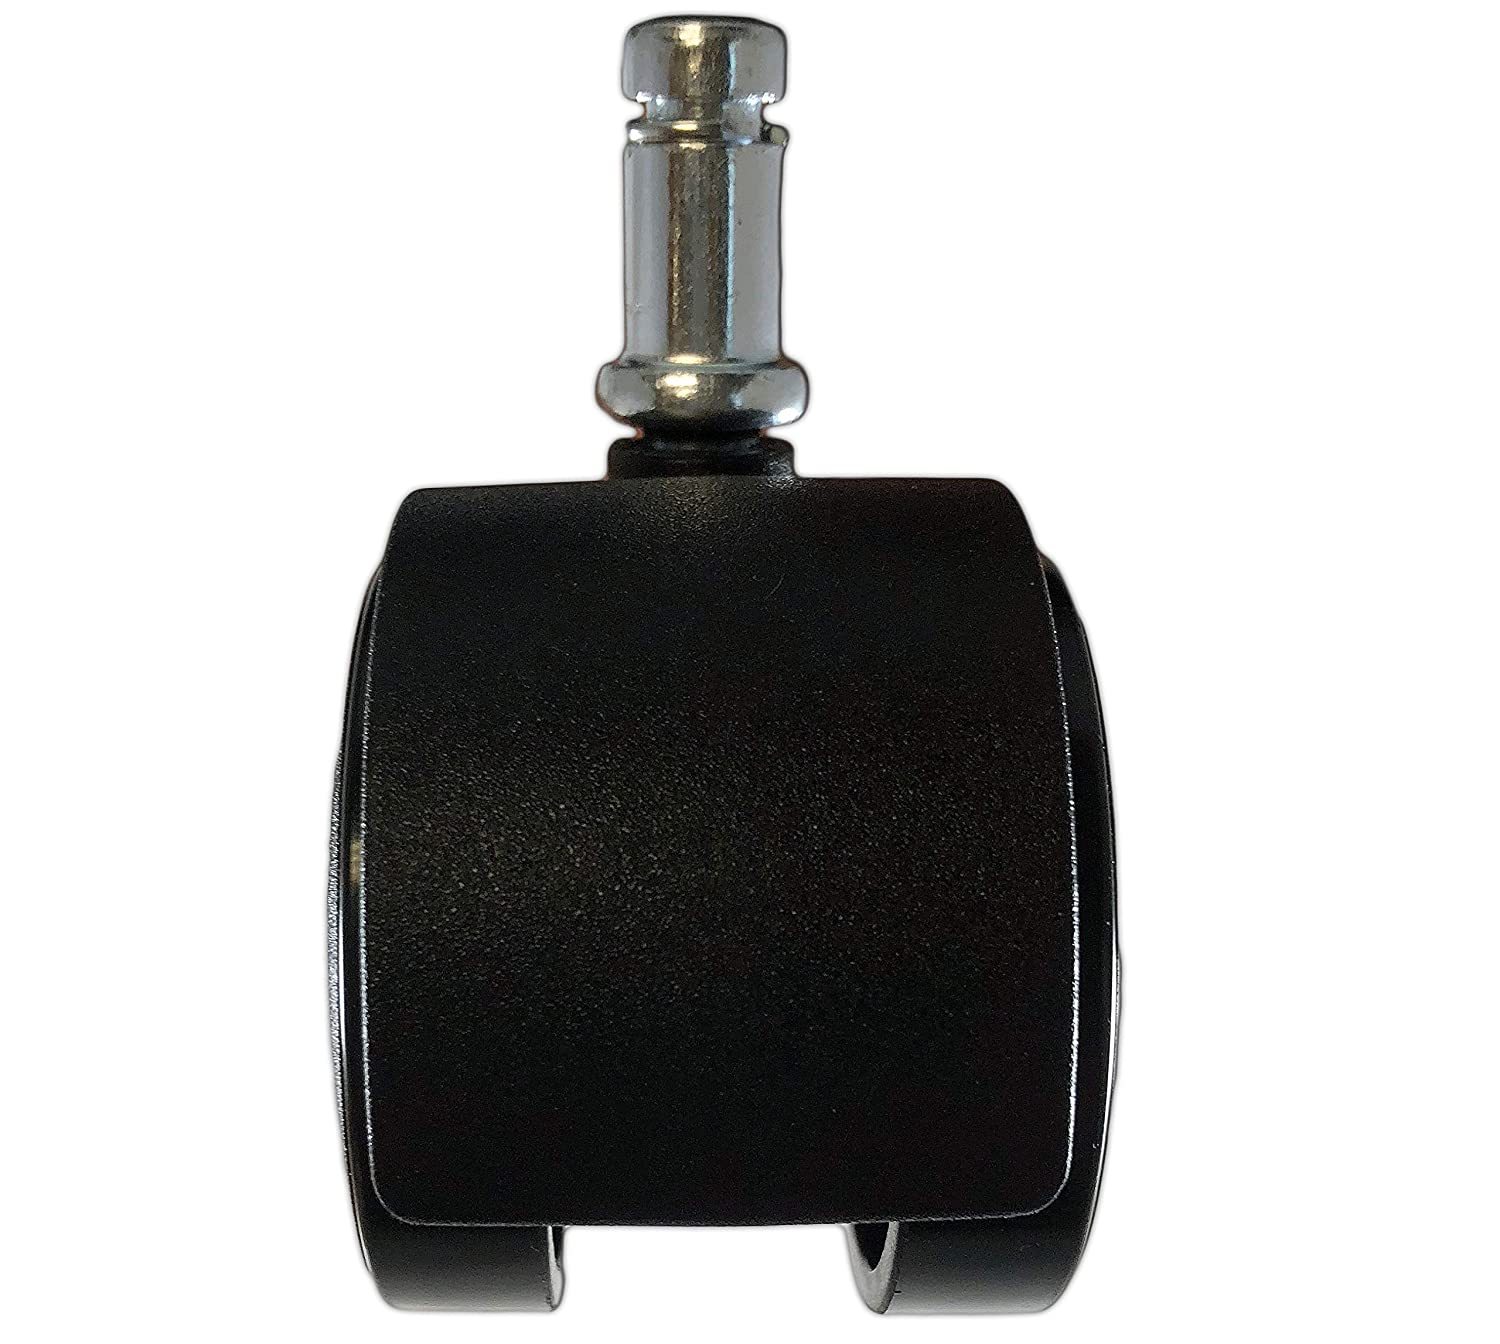 50MM 2 DINETTE Chair Caster - 1 Piece CasterHQ 90 LBS Capacity PER Caster